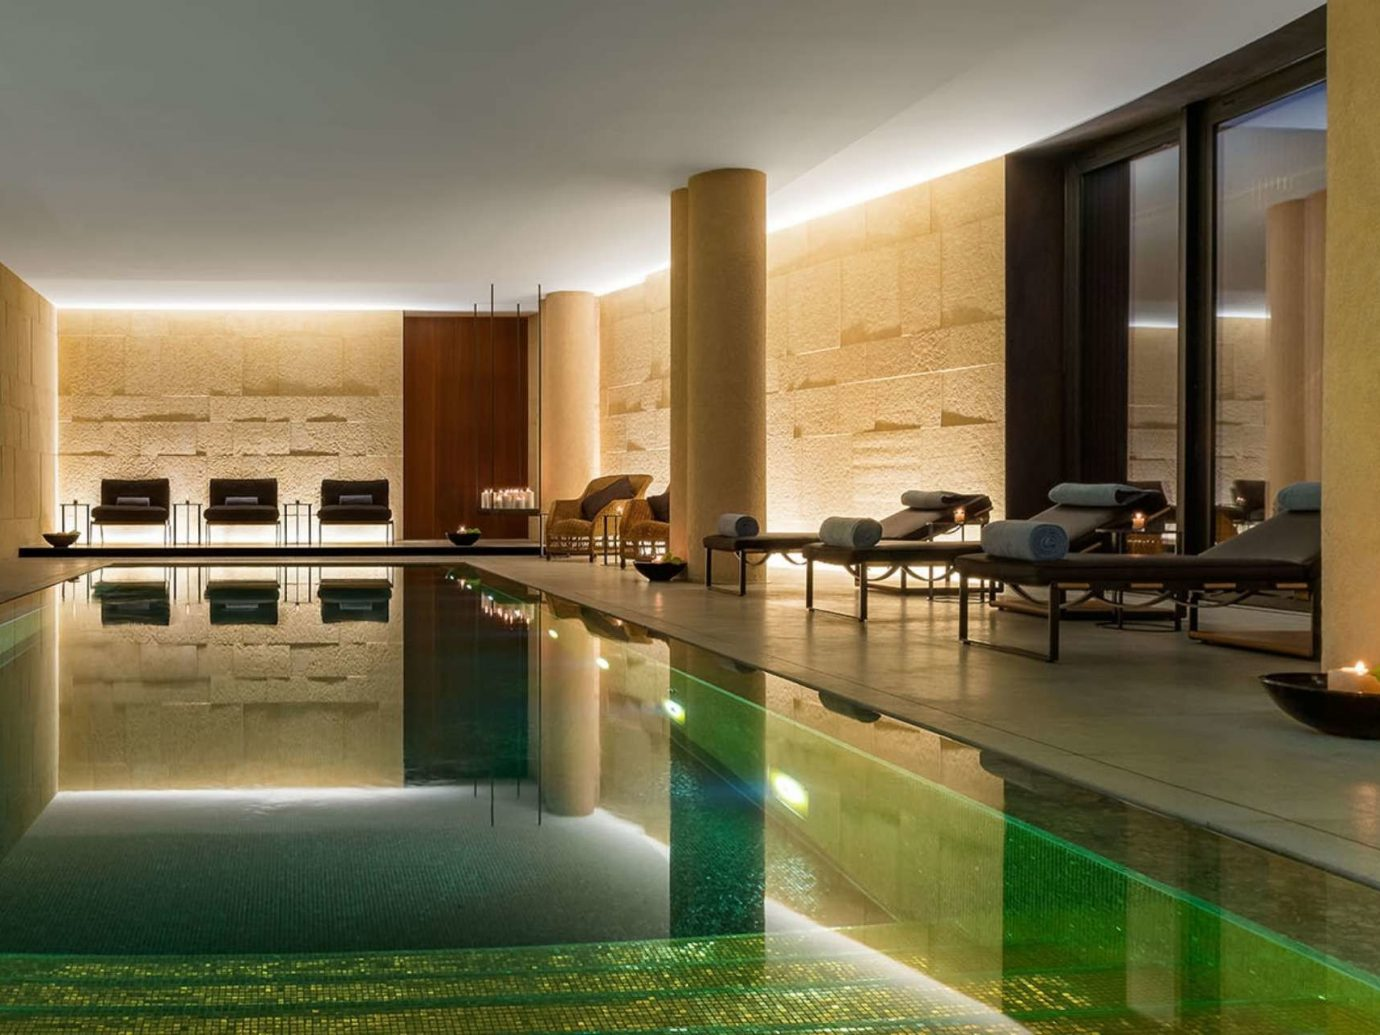 ambient lighting chic dim Health + Wellness Hotels indoor pool interior lights lounge chairs Luxury moody private relaxation Spa Spa Retreats wall indoor property swimming pool room estate Architecture condominium floor Lobby interior design lighting real estate professional Design mansion Villa area